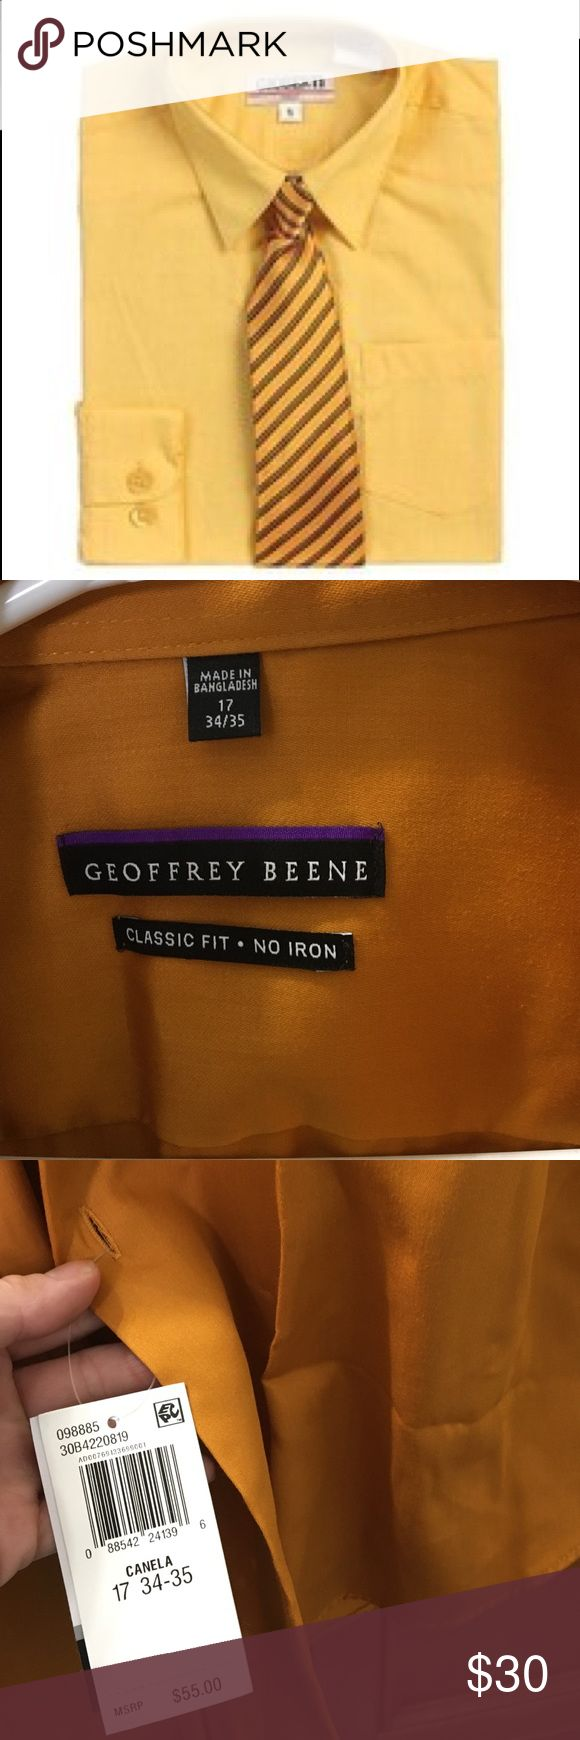 Mustard color dress shirt NWT, size 17, 34/35 perfect condition Geoffrey Beene Shirts Dress Shirts